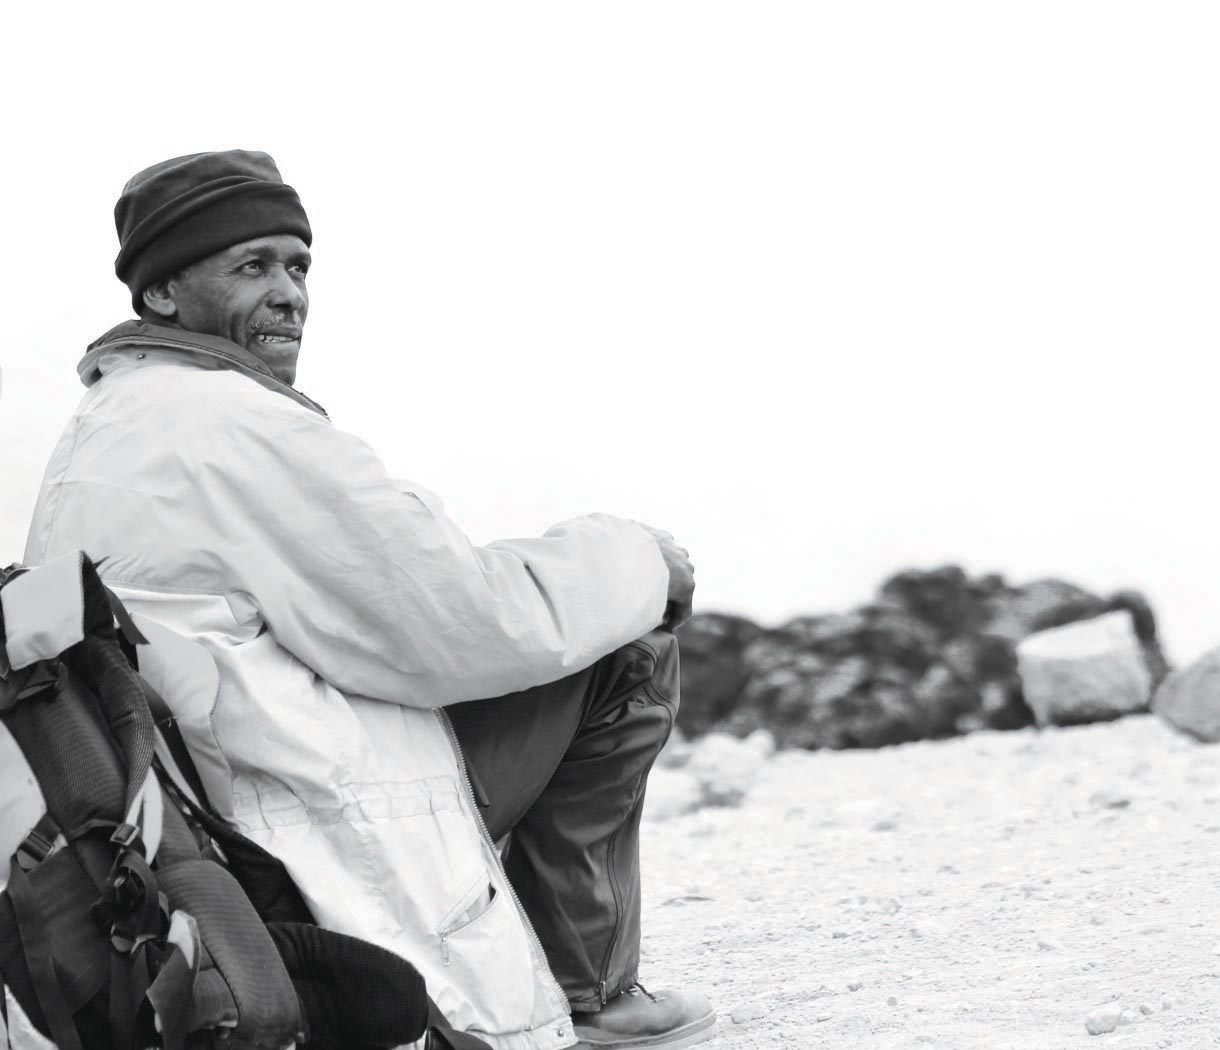 Newcomers Projected Images - Second  - Resting Sherpa On Kilimanjaro by John Baird